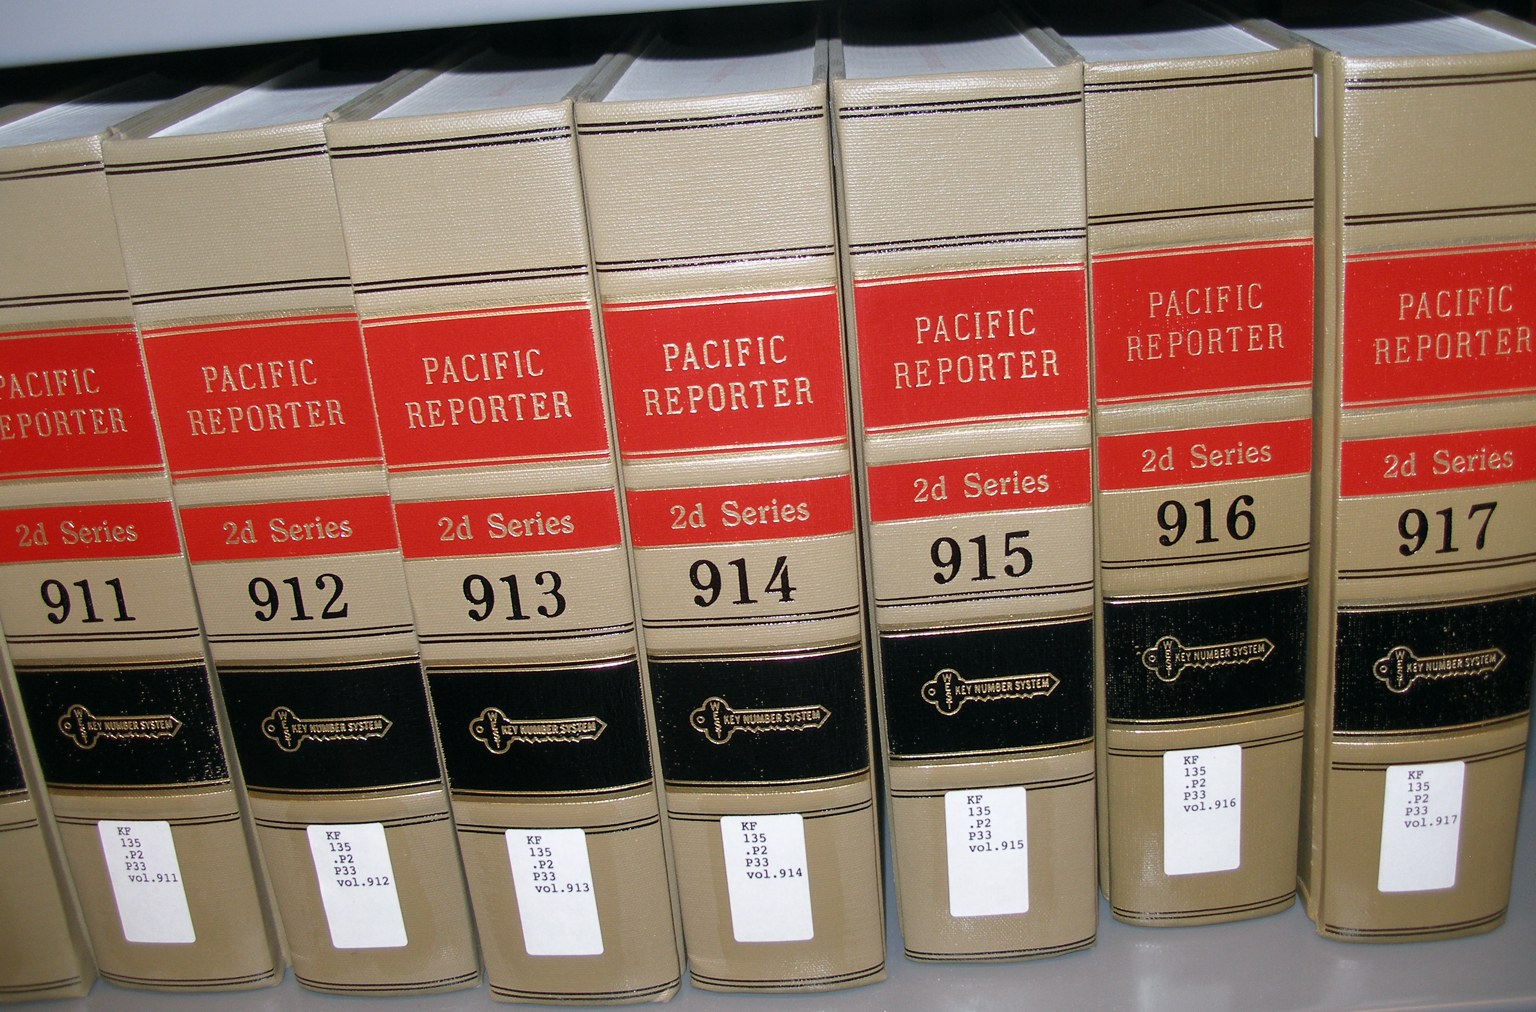 pacific reporter blue book citation